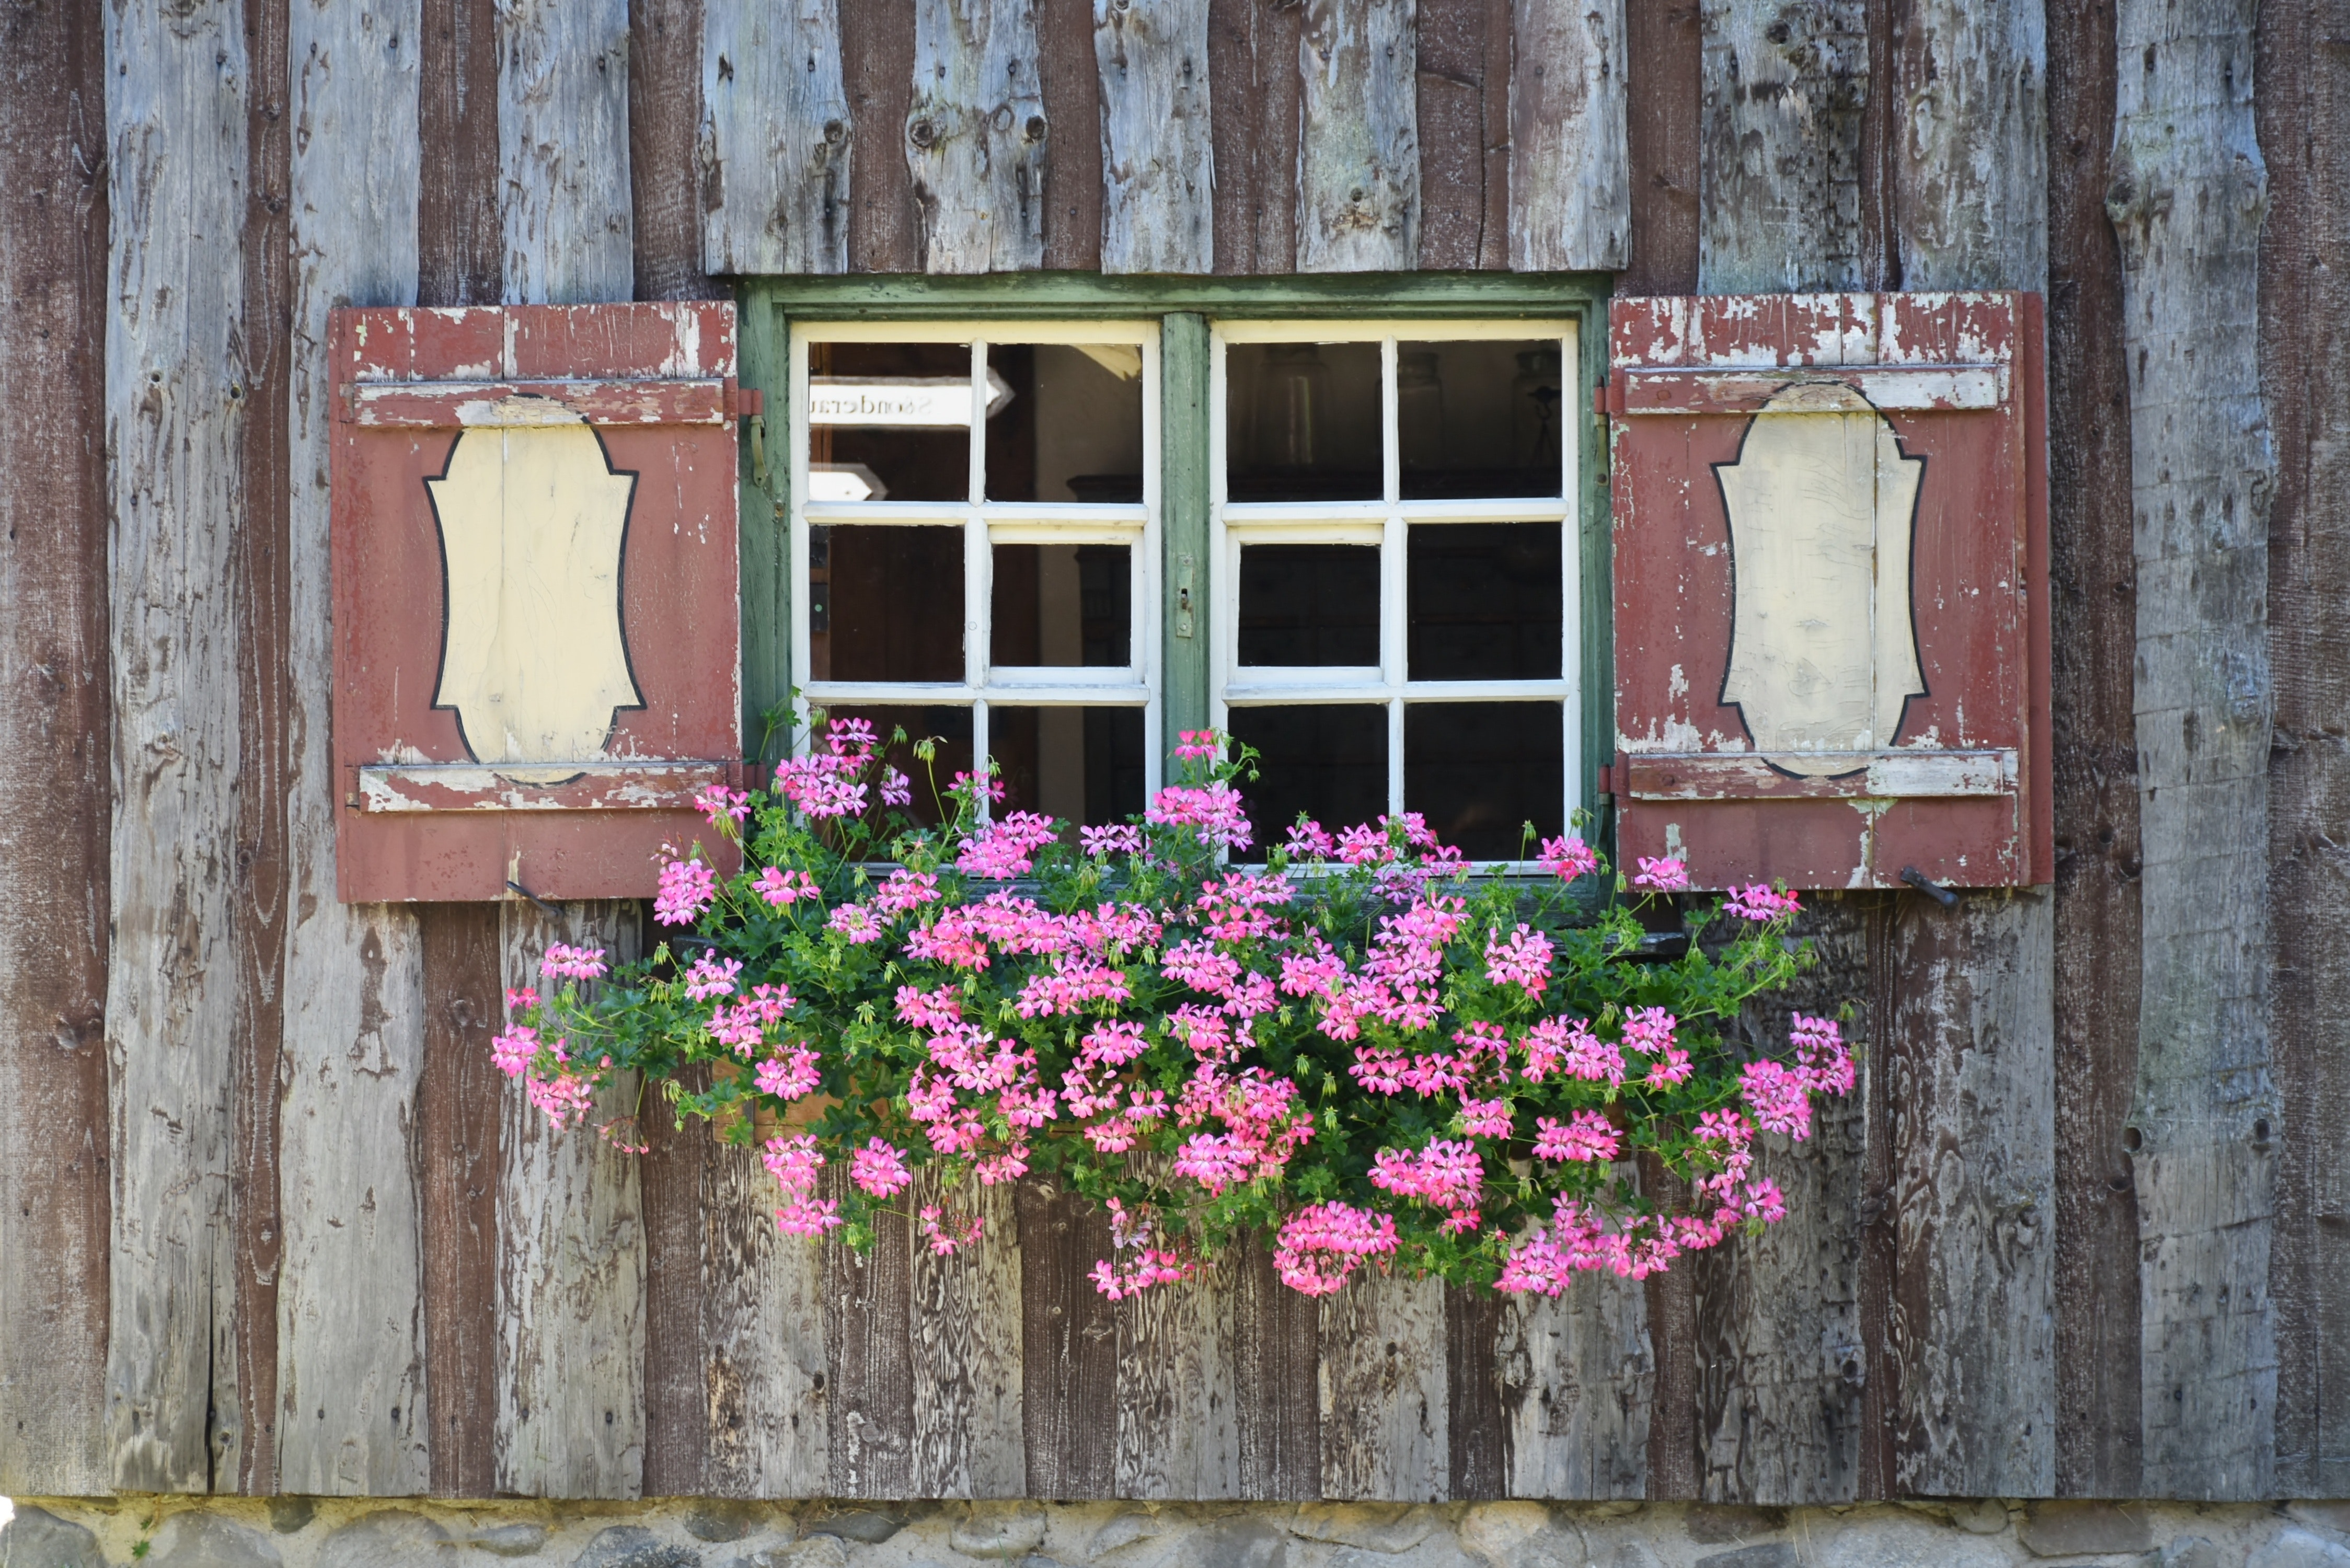 Green and Pink Flower on Green and White Wooden Framed Window, Bloom, Blossom, Flora, Flowers, HQ Photo